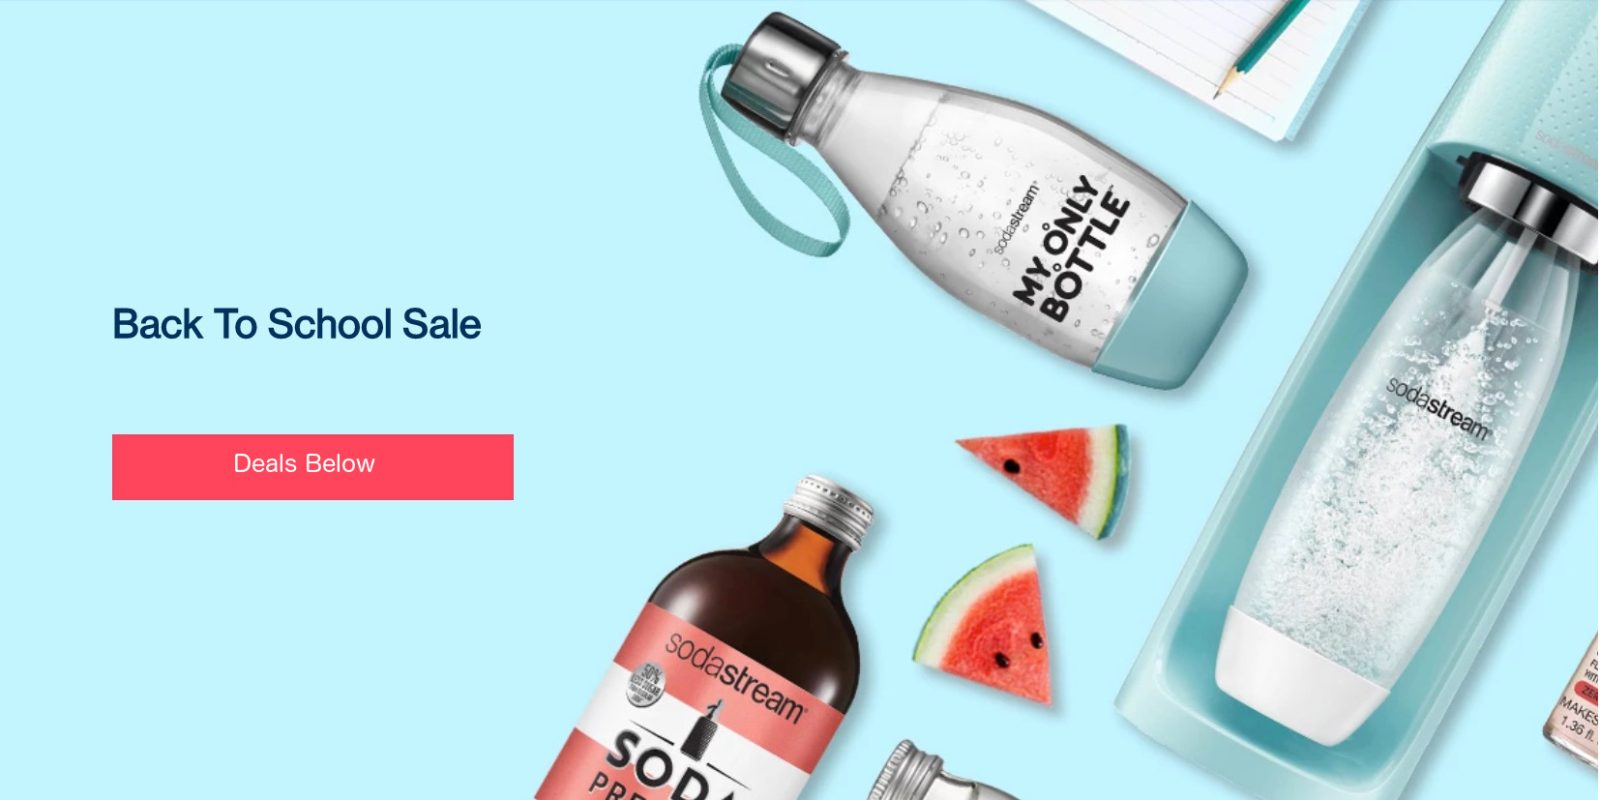 SodaStream Labor Day sale now live with up to 15% off sitewide + more